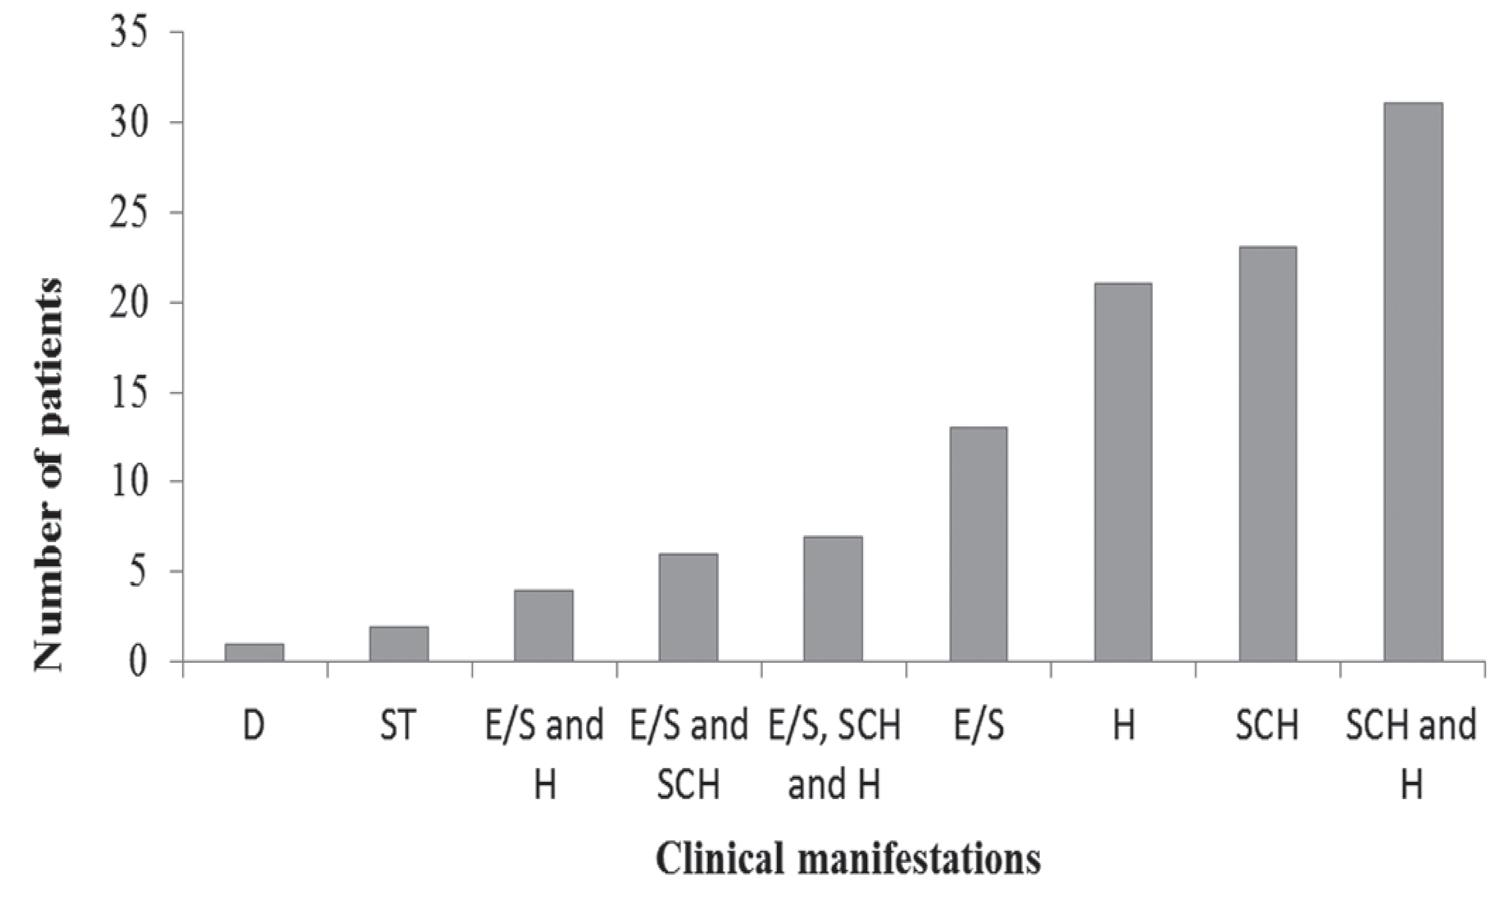 NCC-related clinical manifestations of study patients. E/S = Epilepsy/seizures, H = Hydrocephalus, SCH= Severe chronic headaches, ST= Stroke, D = Dementia